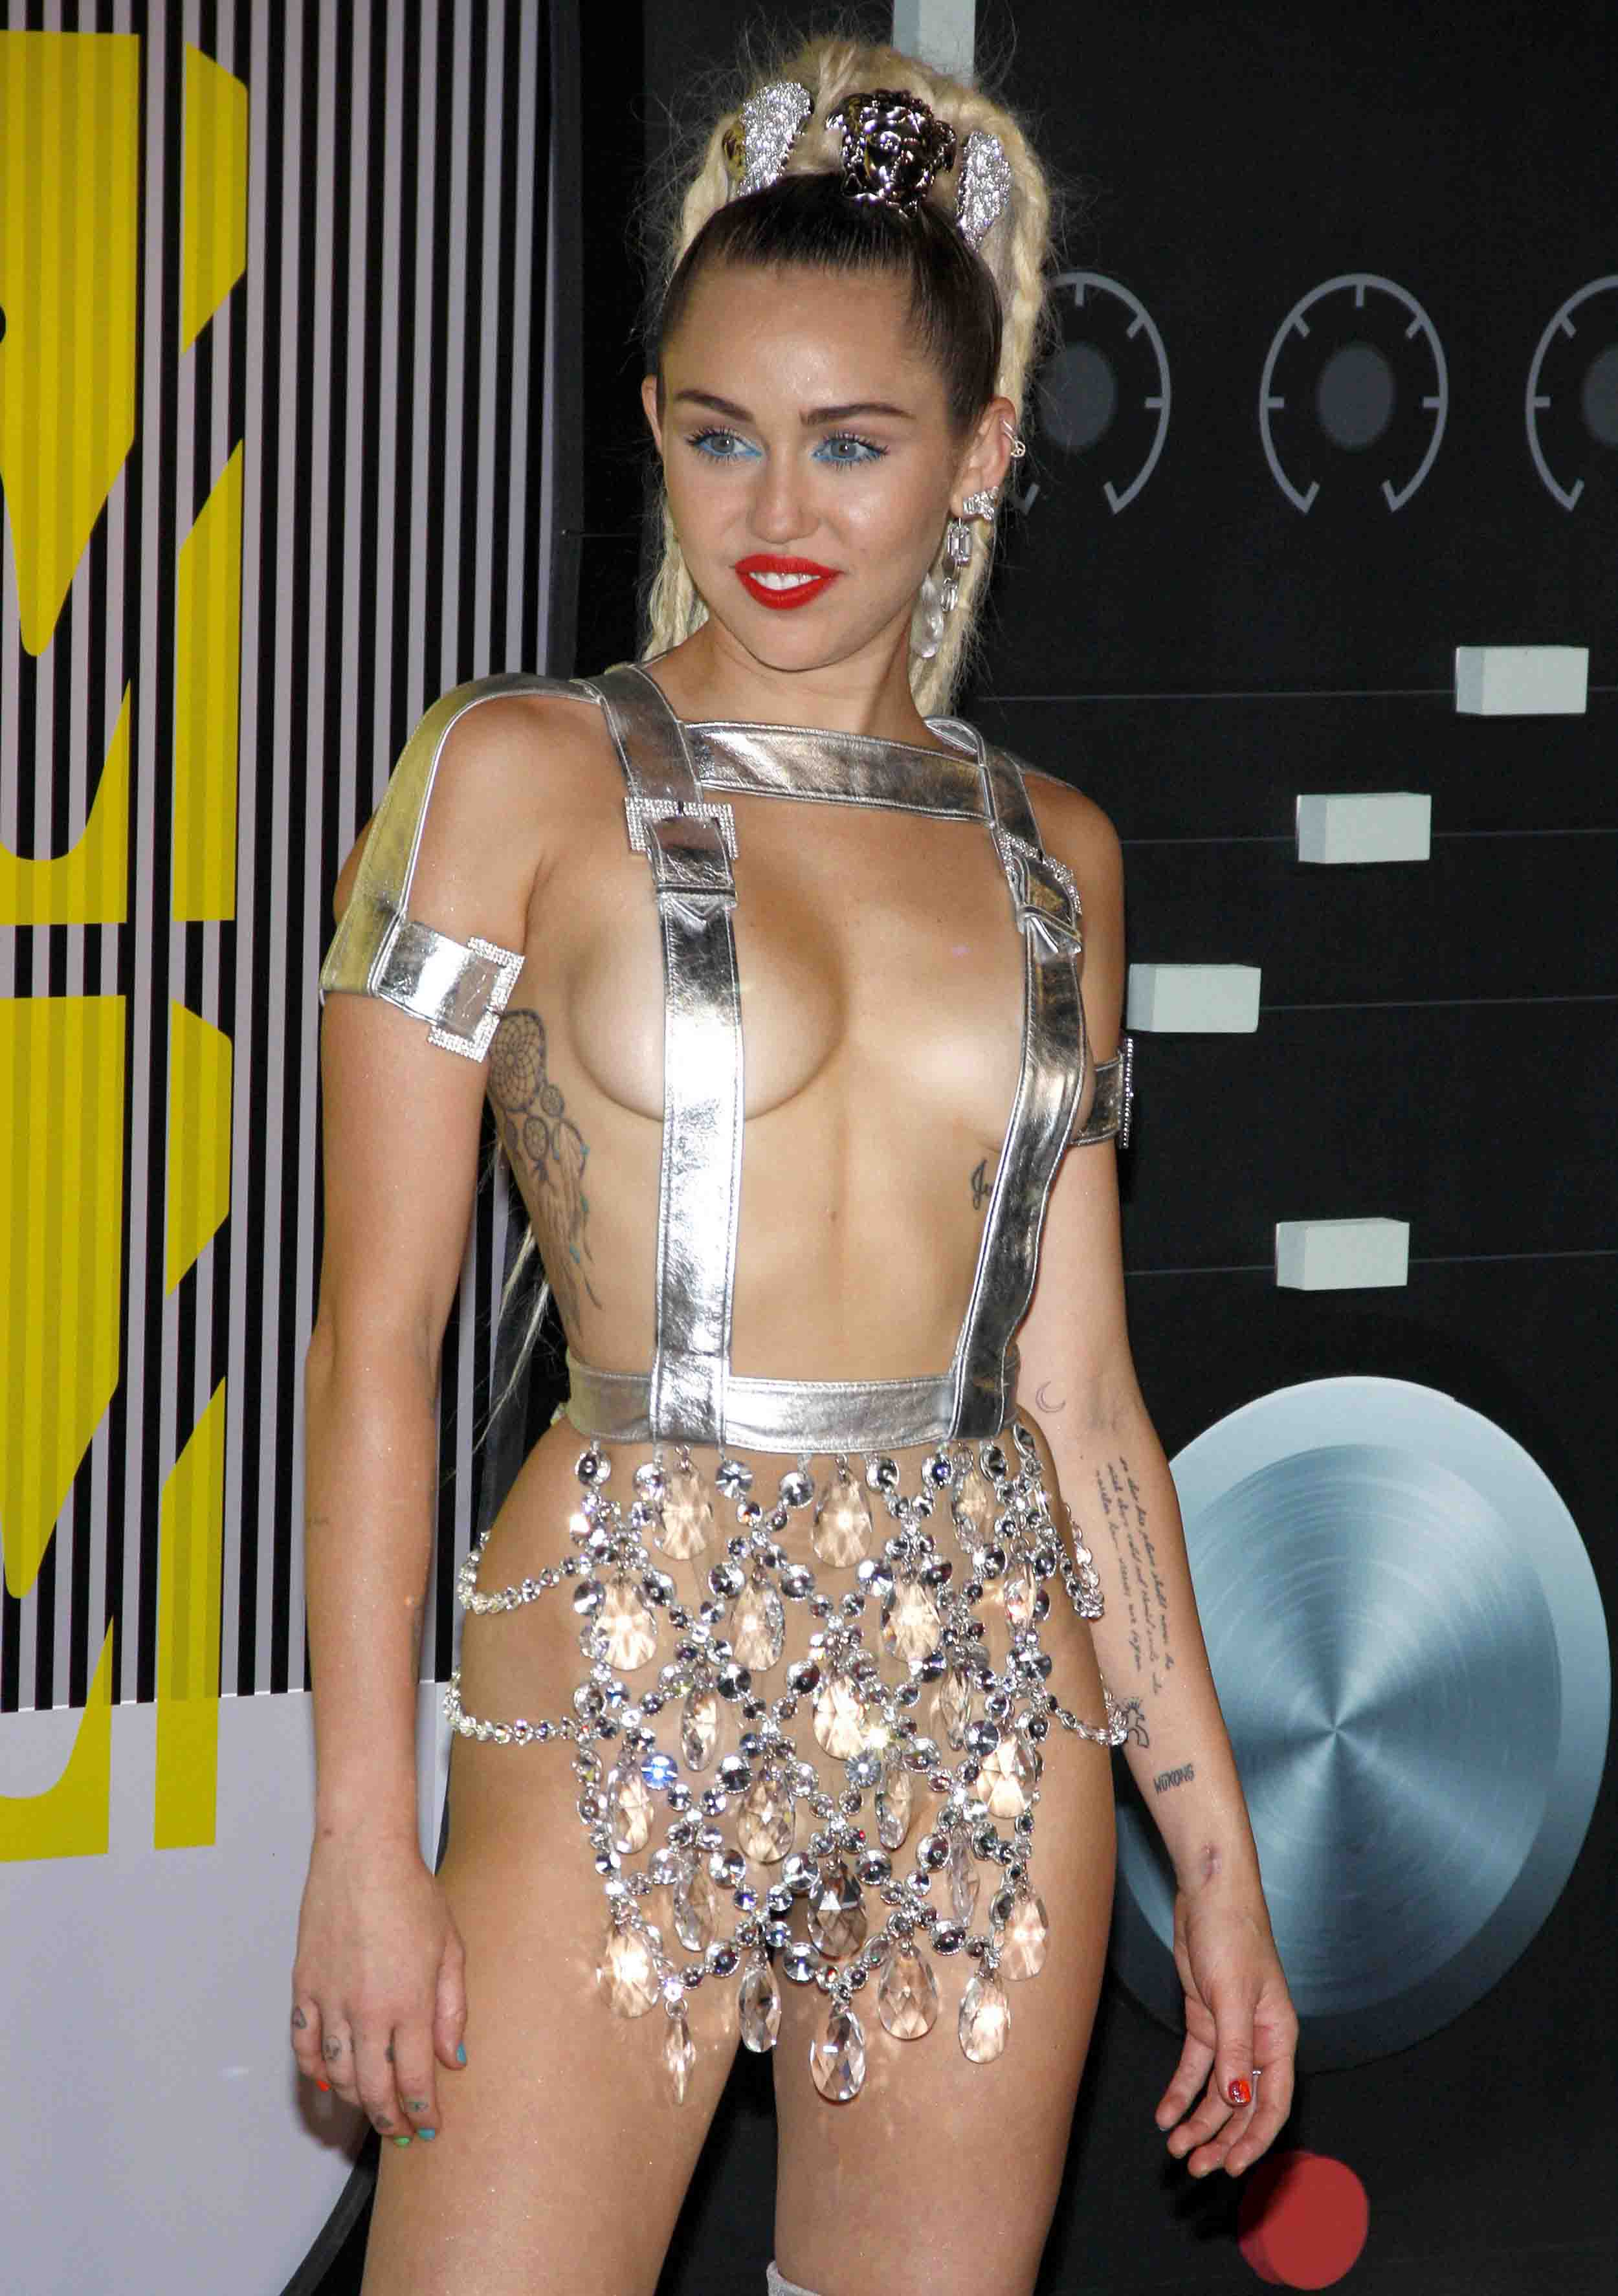 miley cyrus nackte